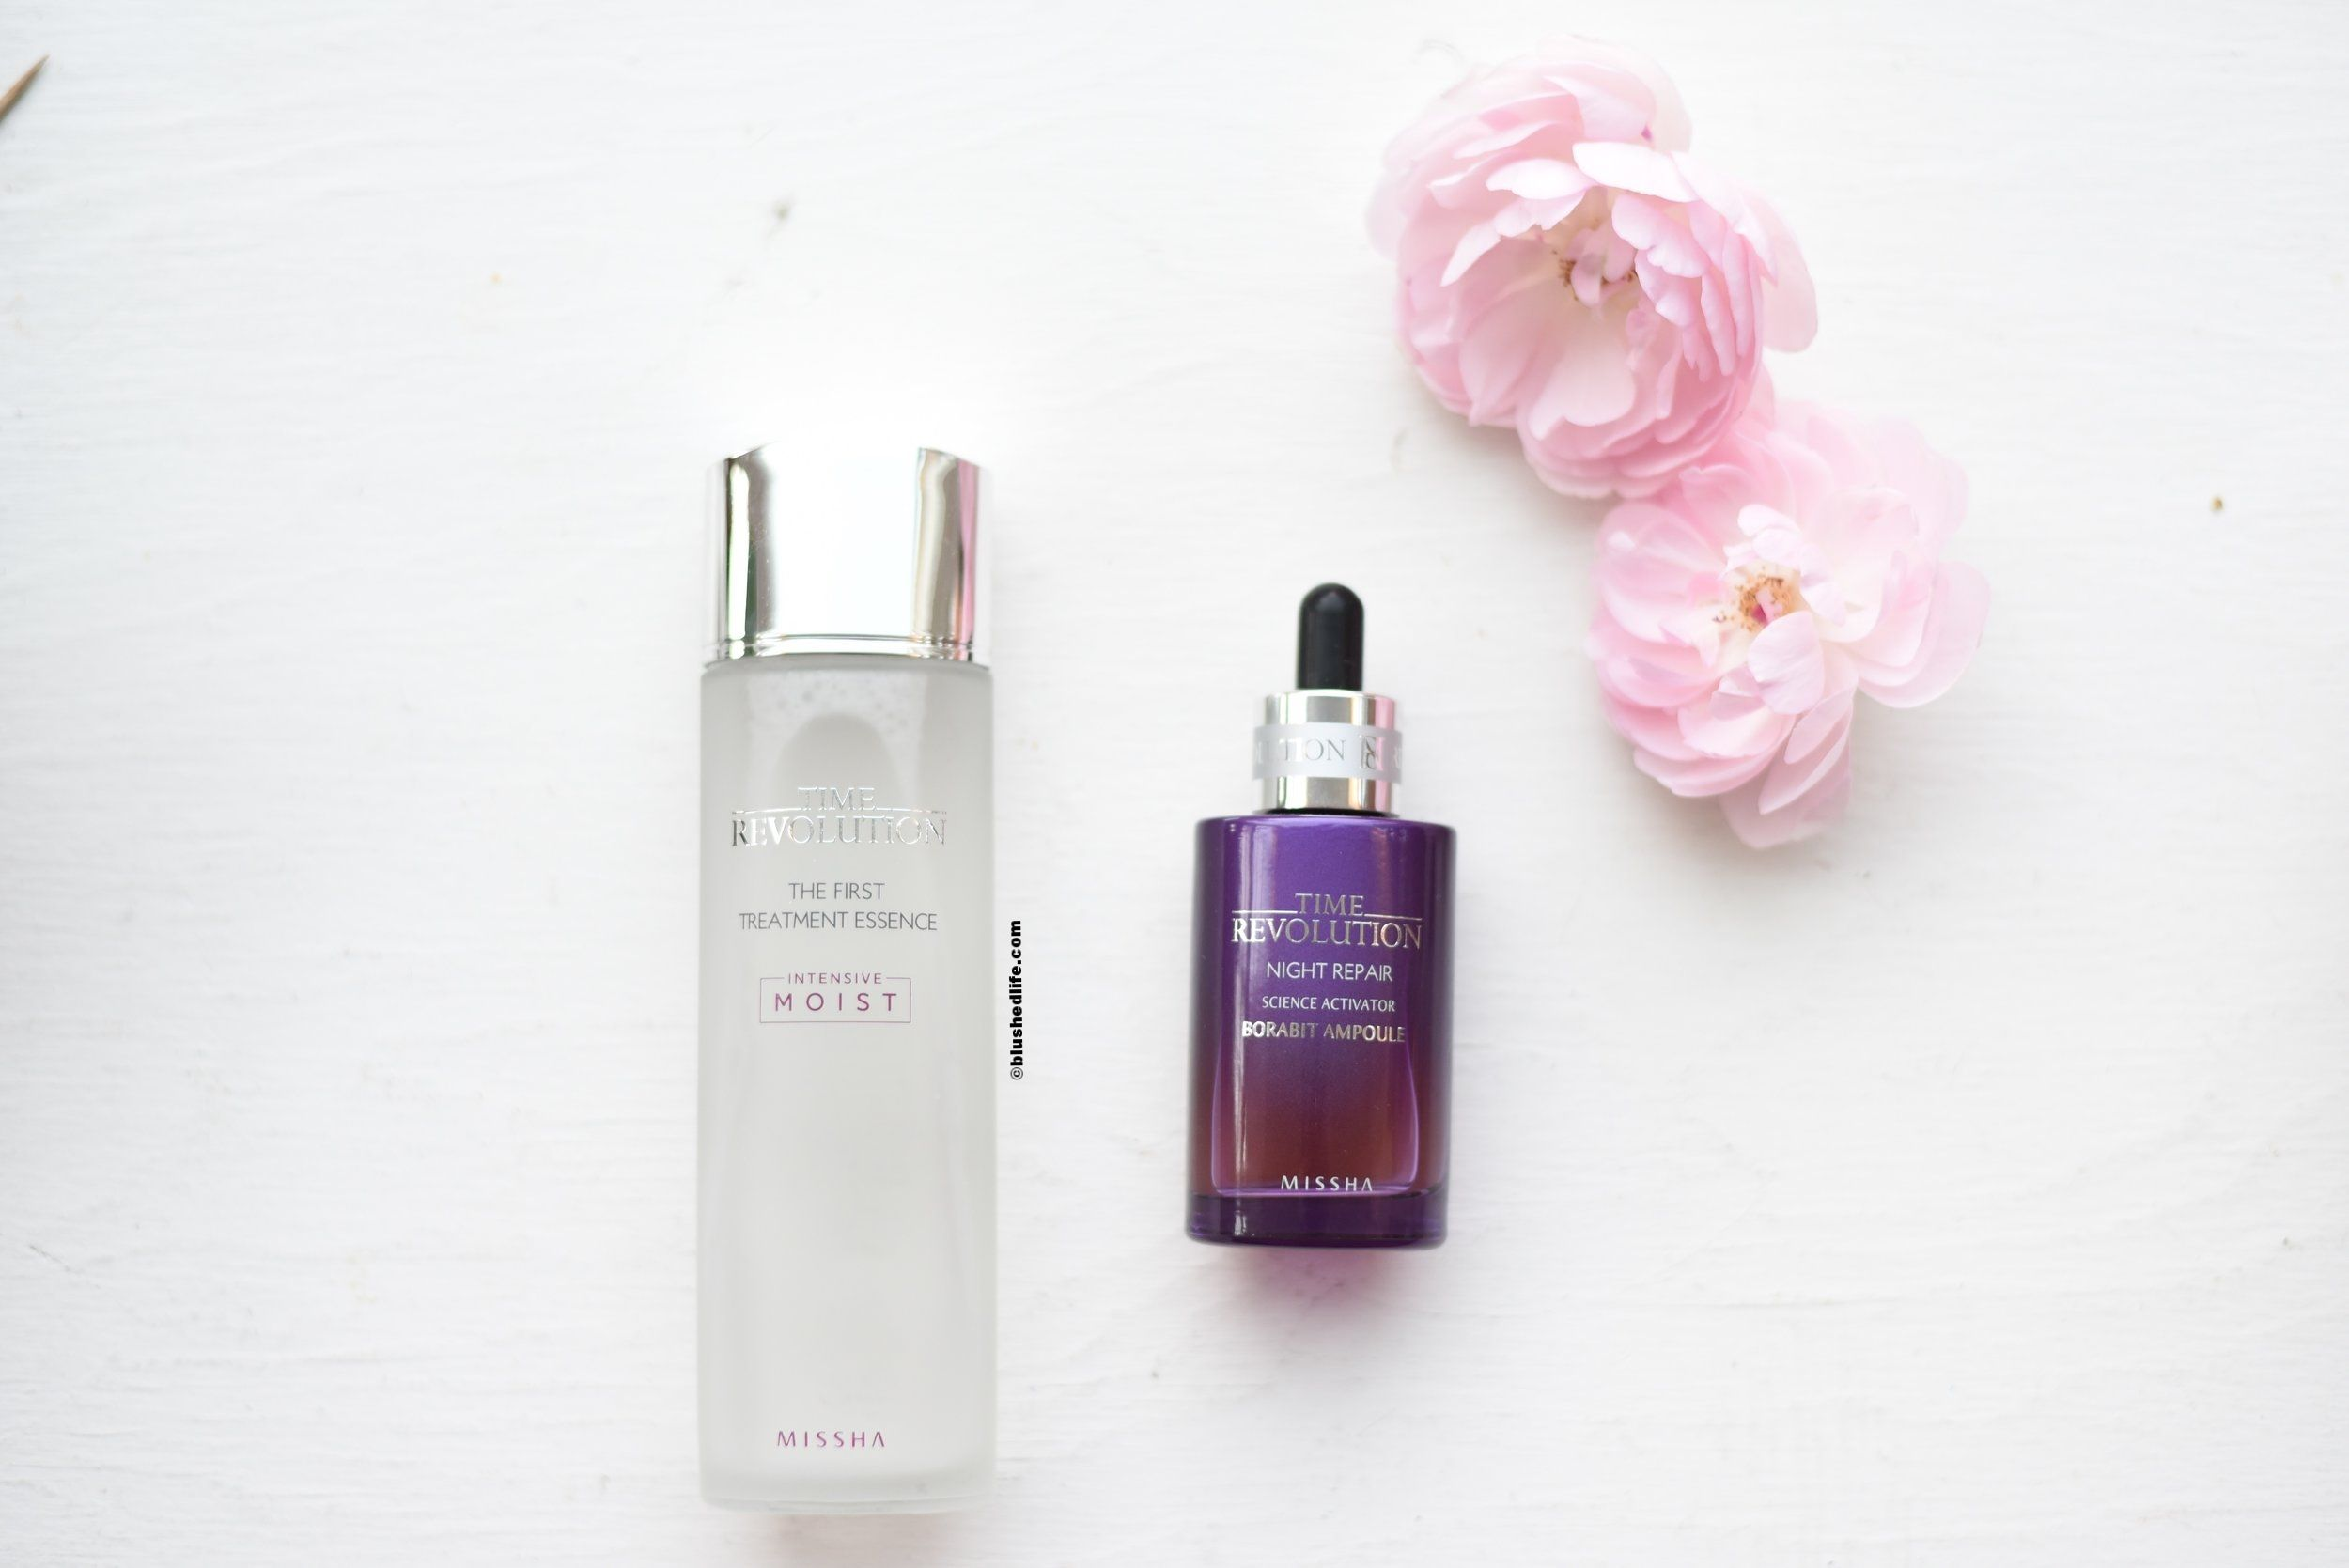 Sep 27 Missha Time Revolution The First Treatment Essence Intensive Moist Review